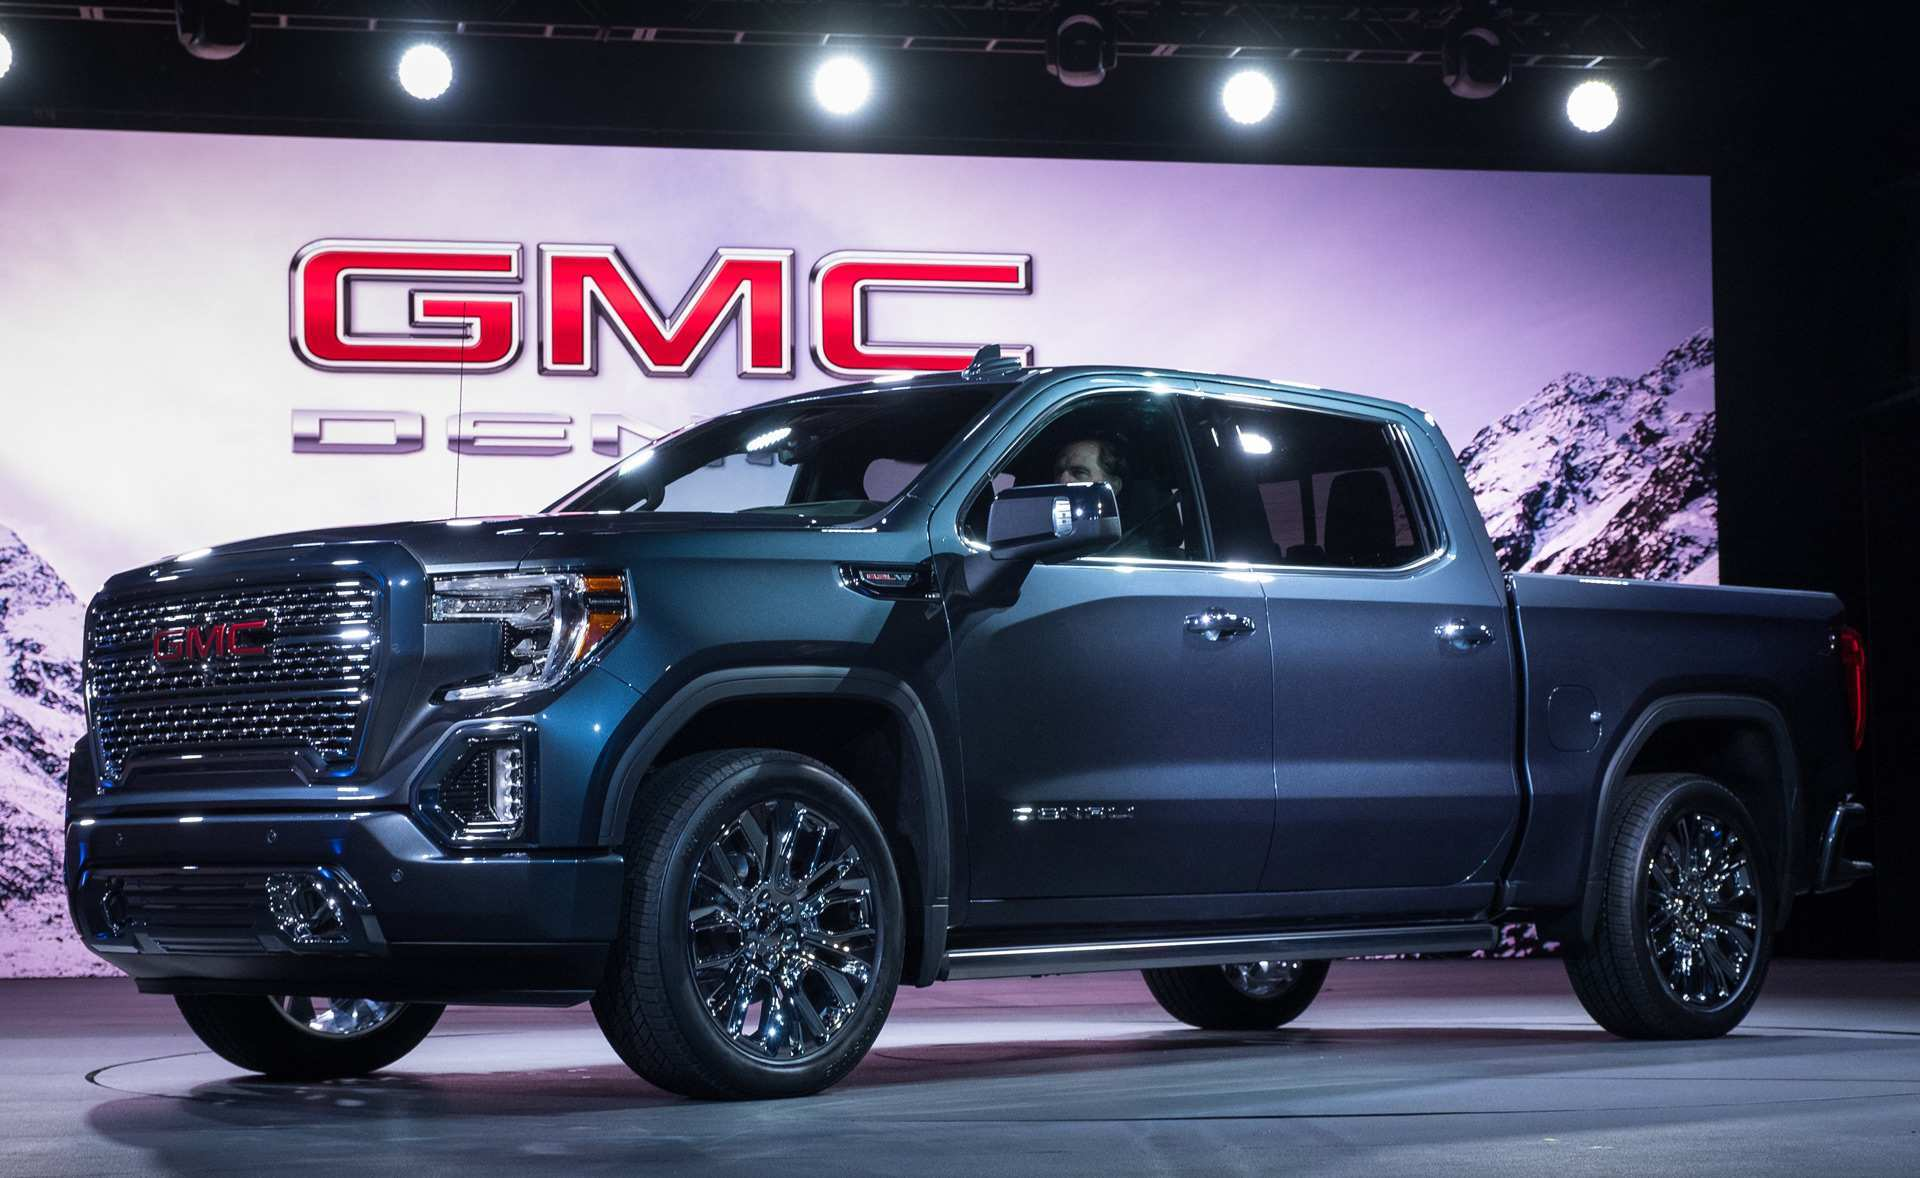 19 Concept of Gmc New Truck 2020 Rumors by Gmc New Truck 2020